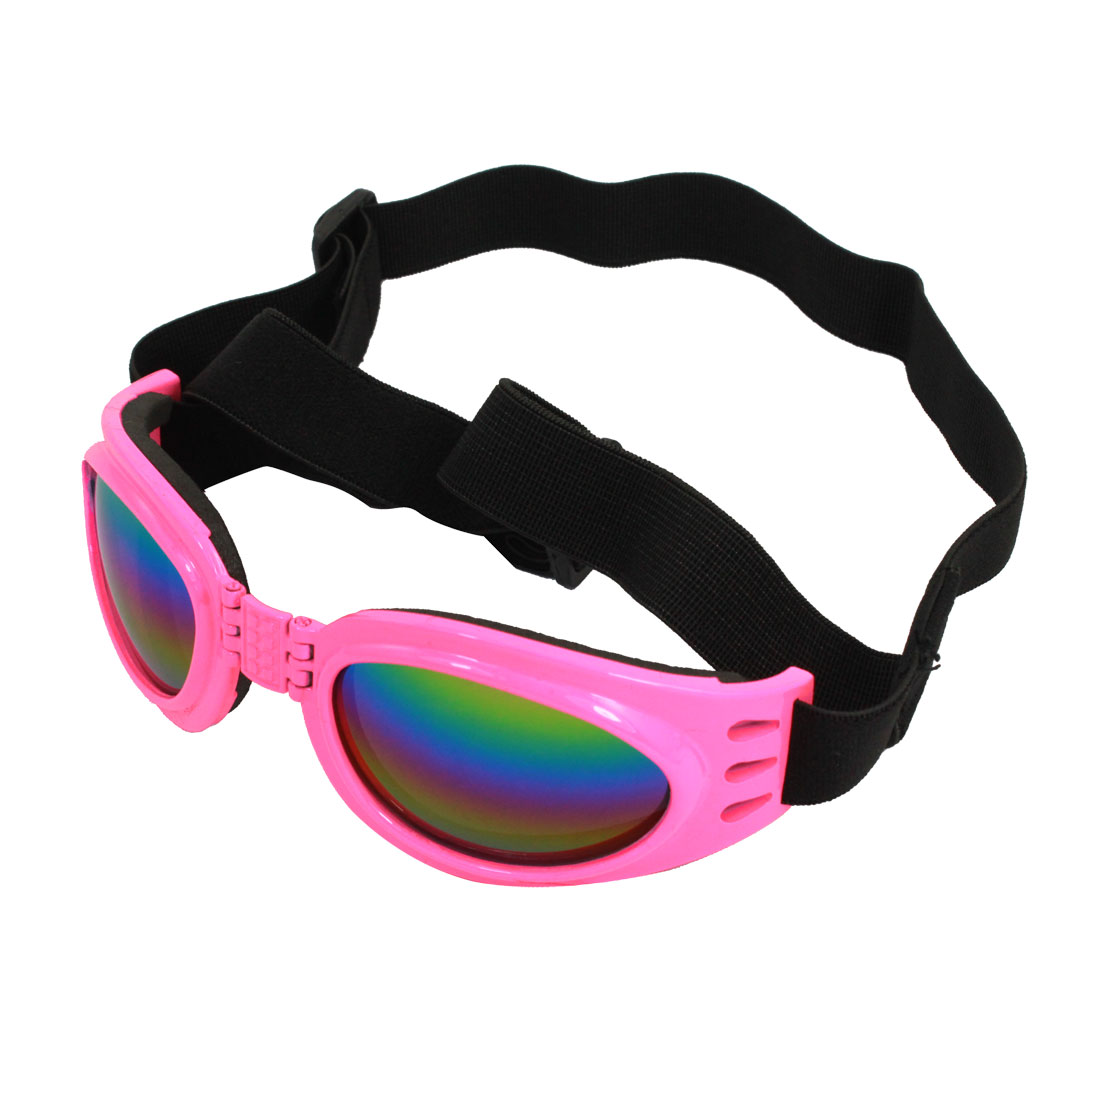 Adjustable Band Pink Frame Pet Dog Puppy Eye Protective Sunglasses Goggles